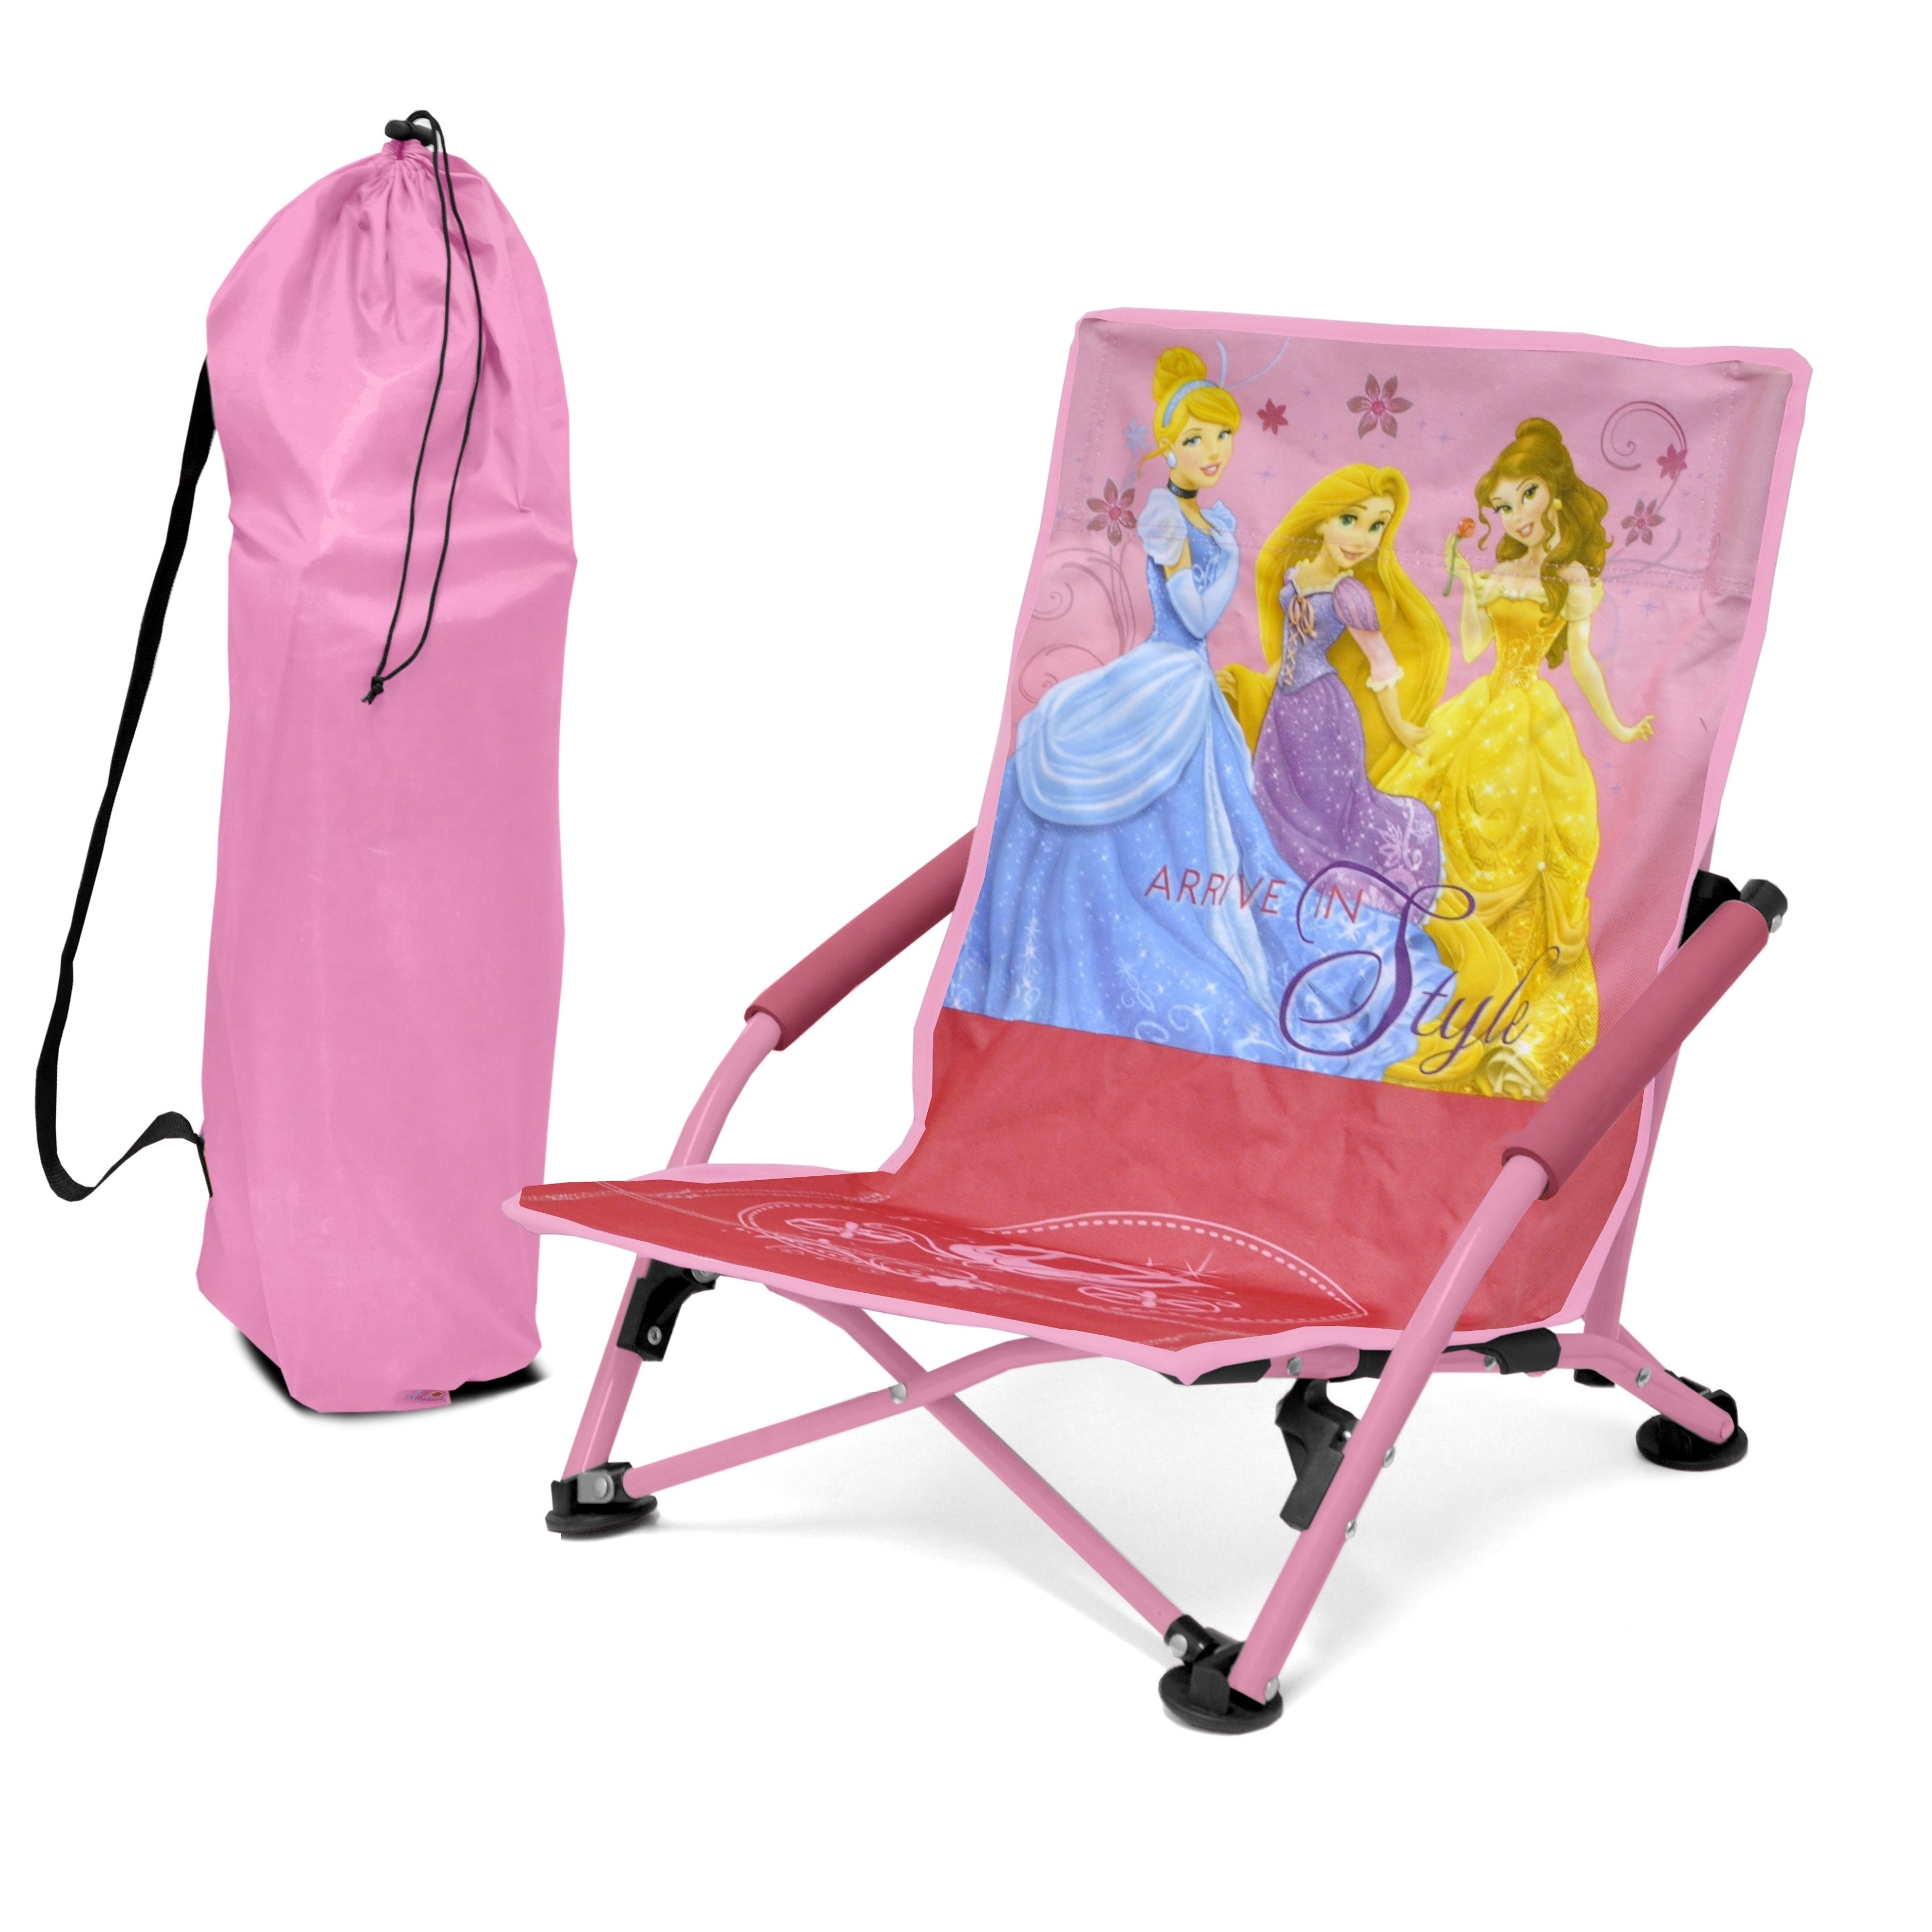 Attractive Disney Princess Kids Folding Lounge Chair   Free Shipping Today   Overstock    19944849